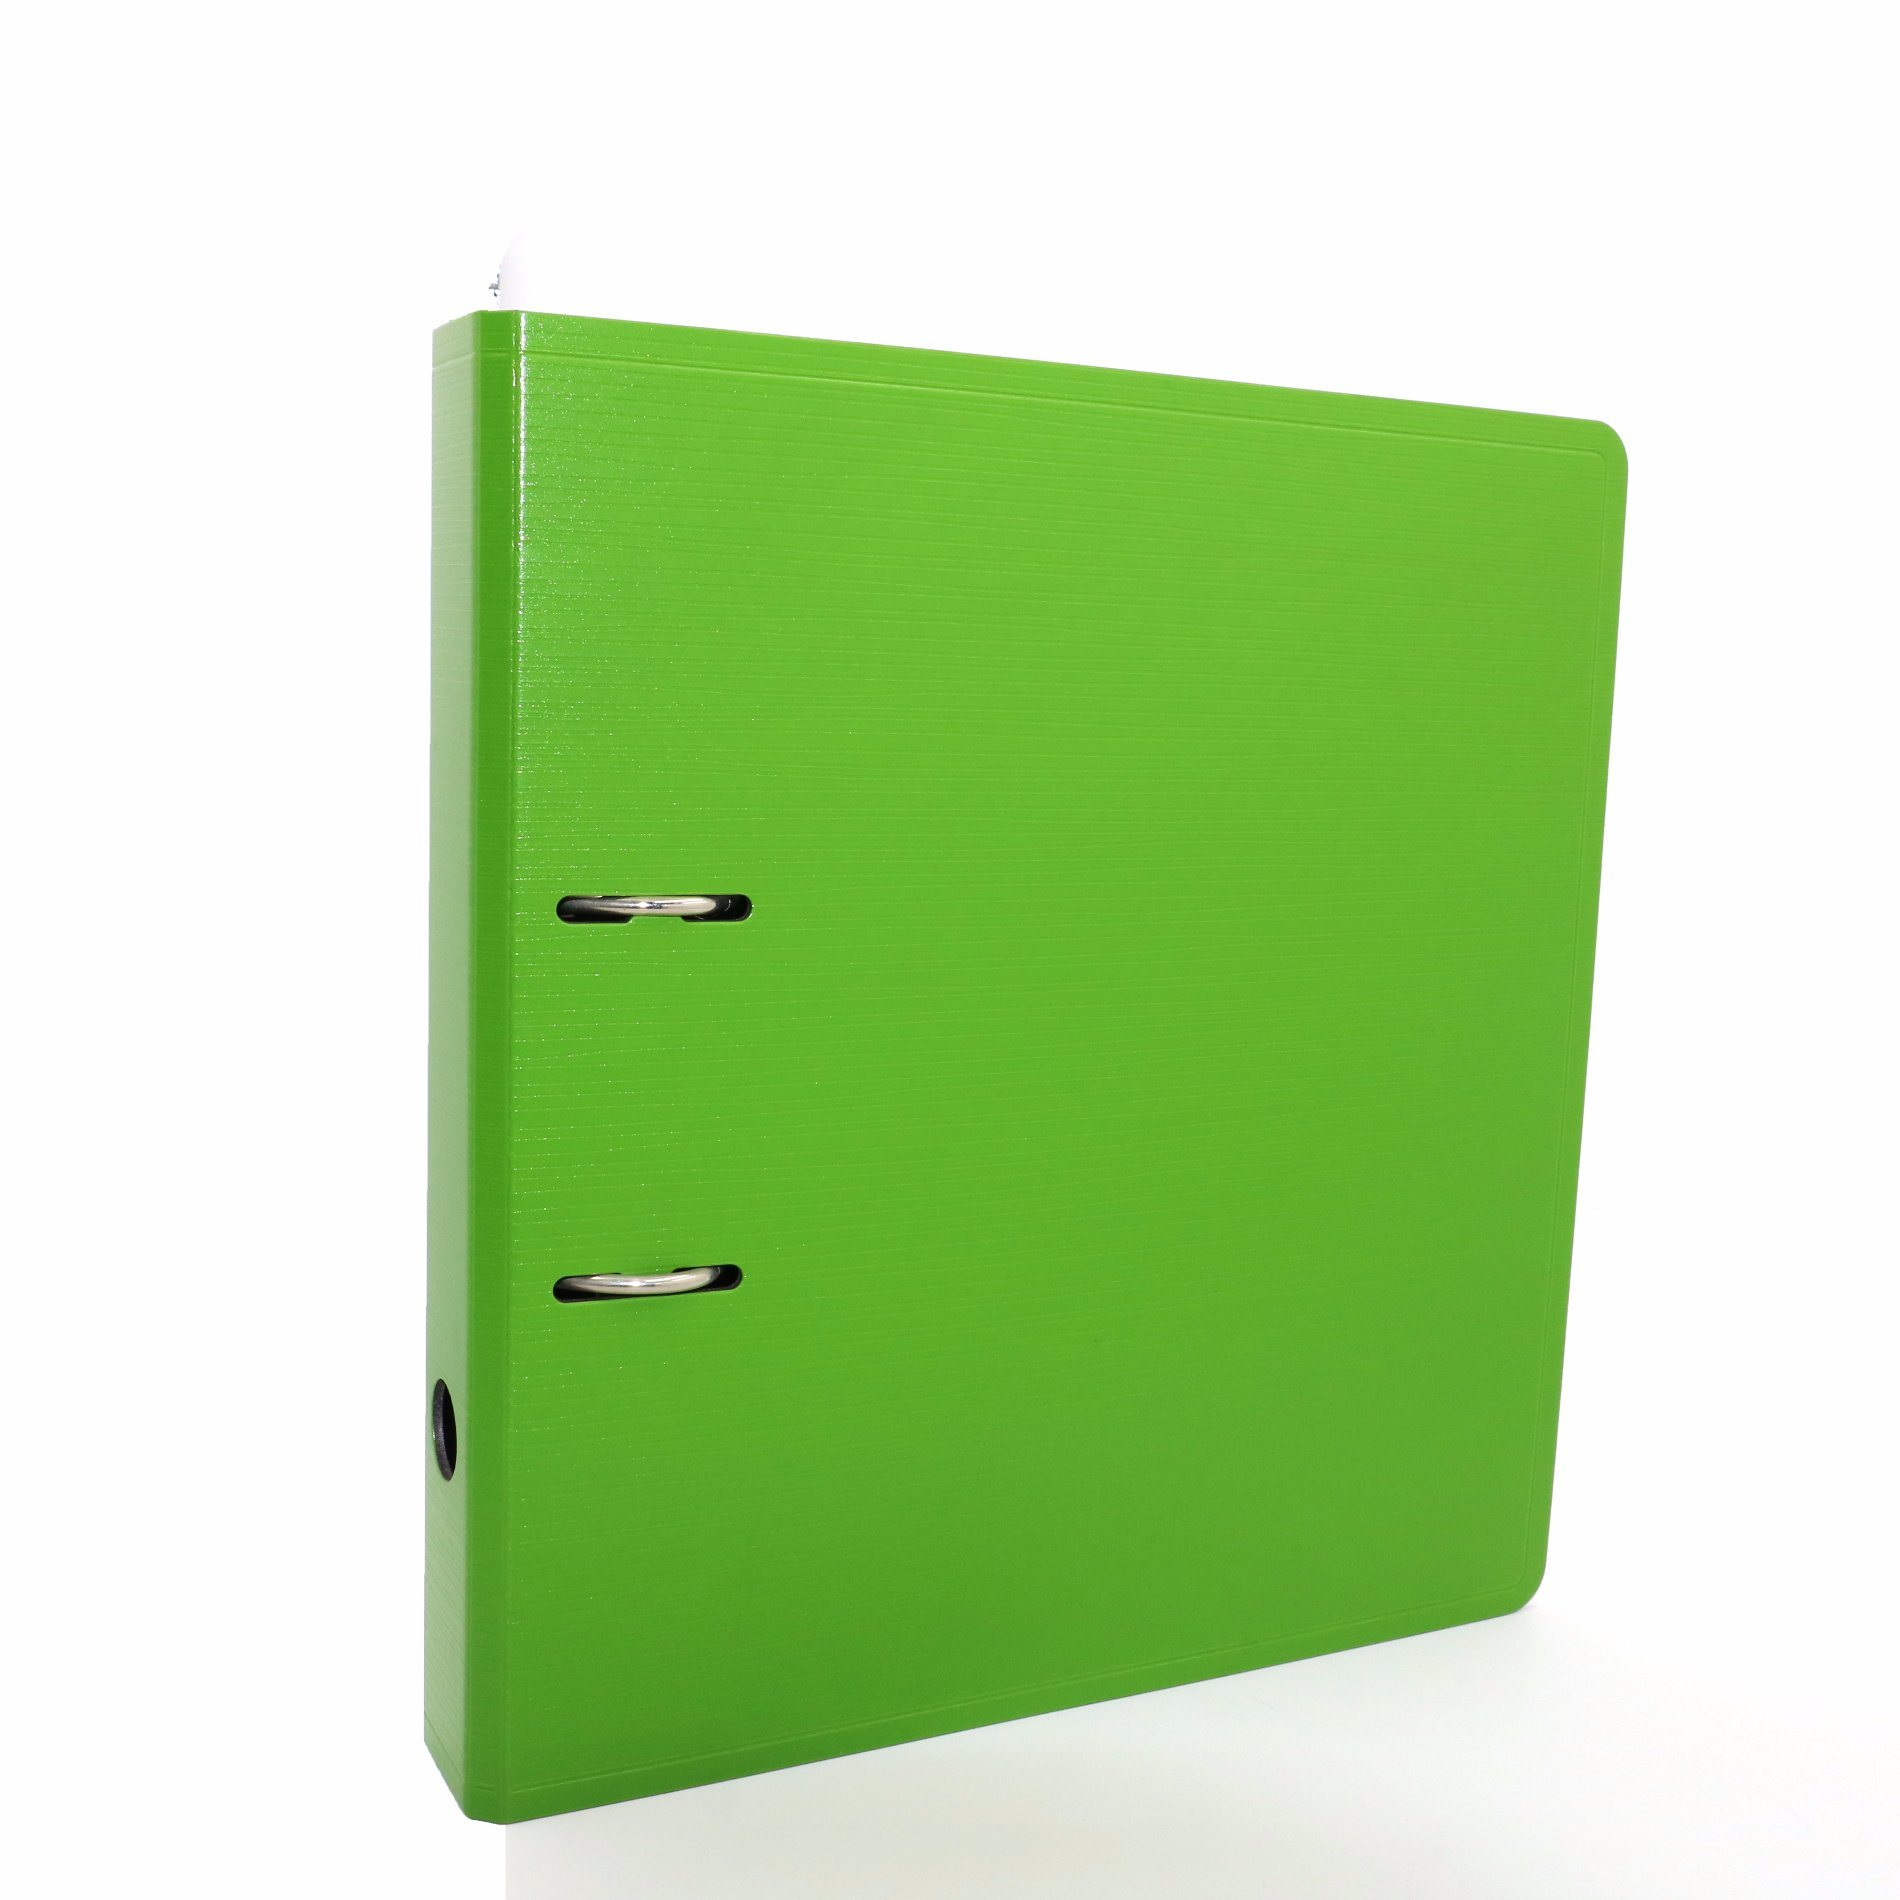 An Overview Of The A4 Clipboard Industry With A Focus On Menu Clipboards